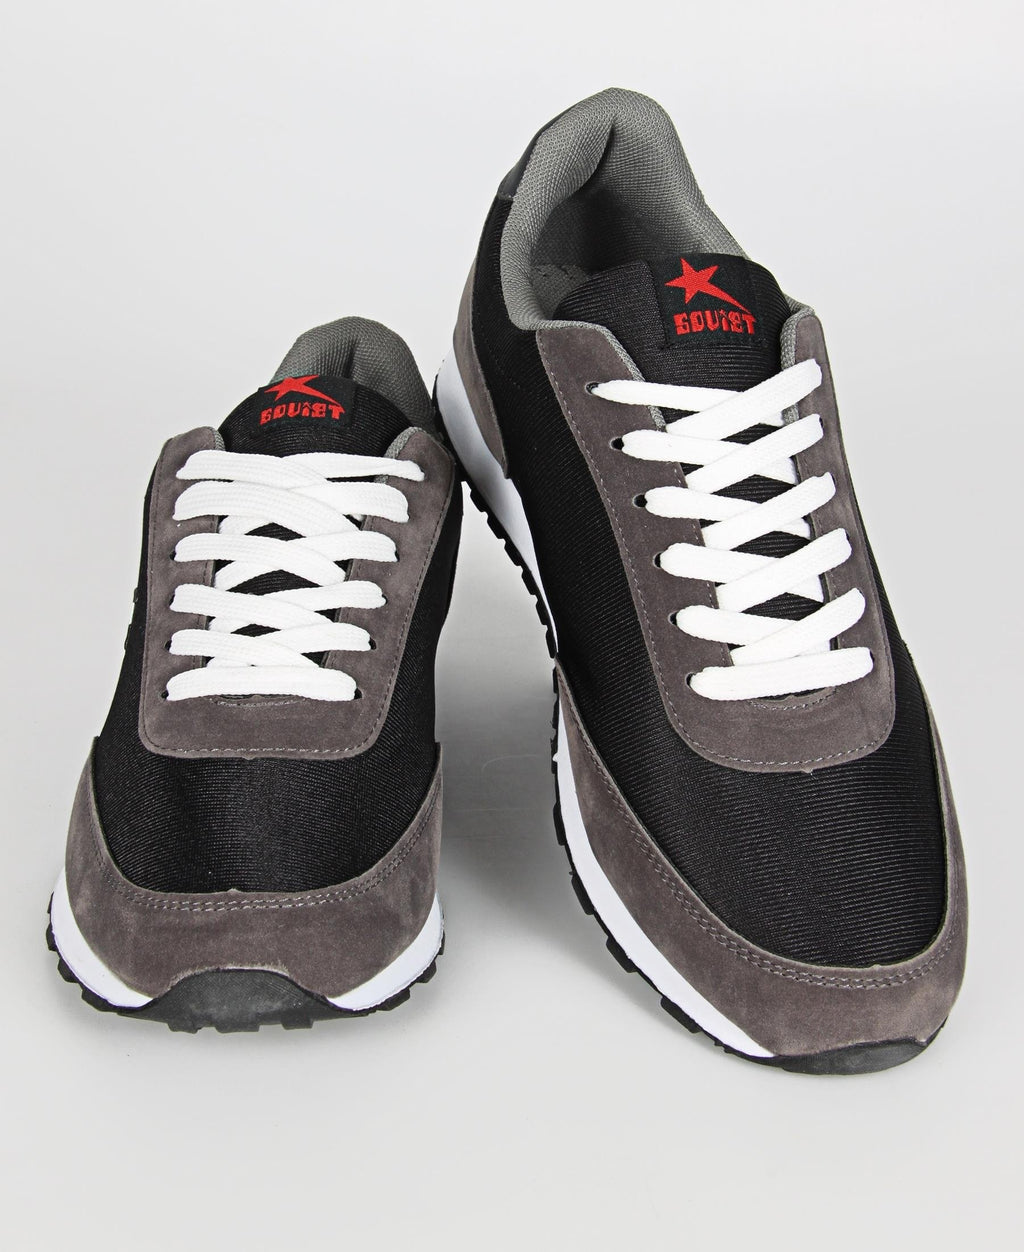 Men's Avalanche Sneakers - Charcoal